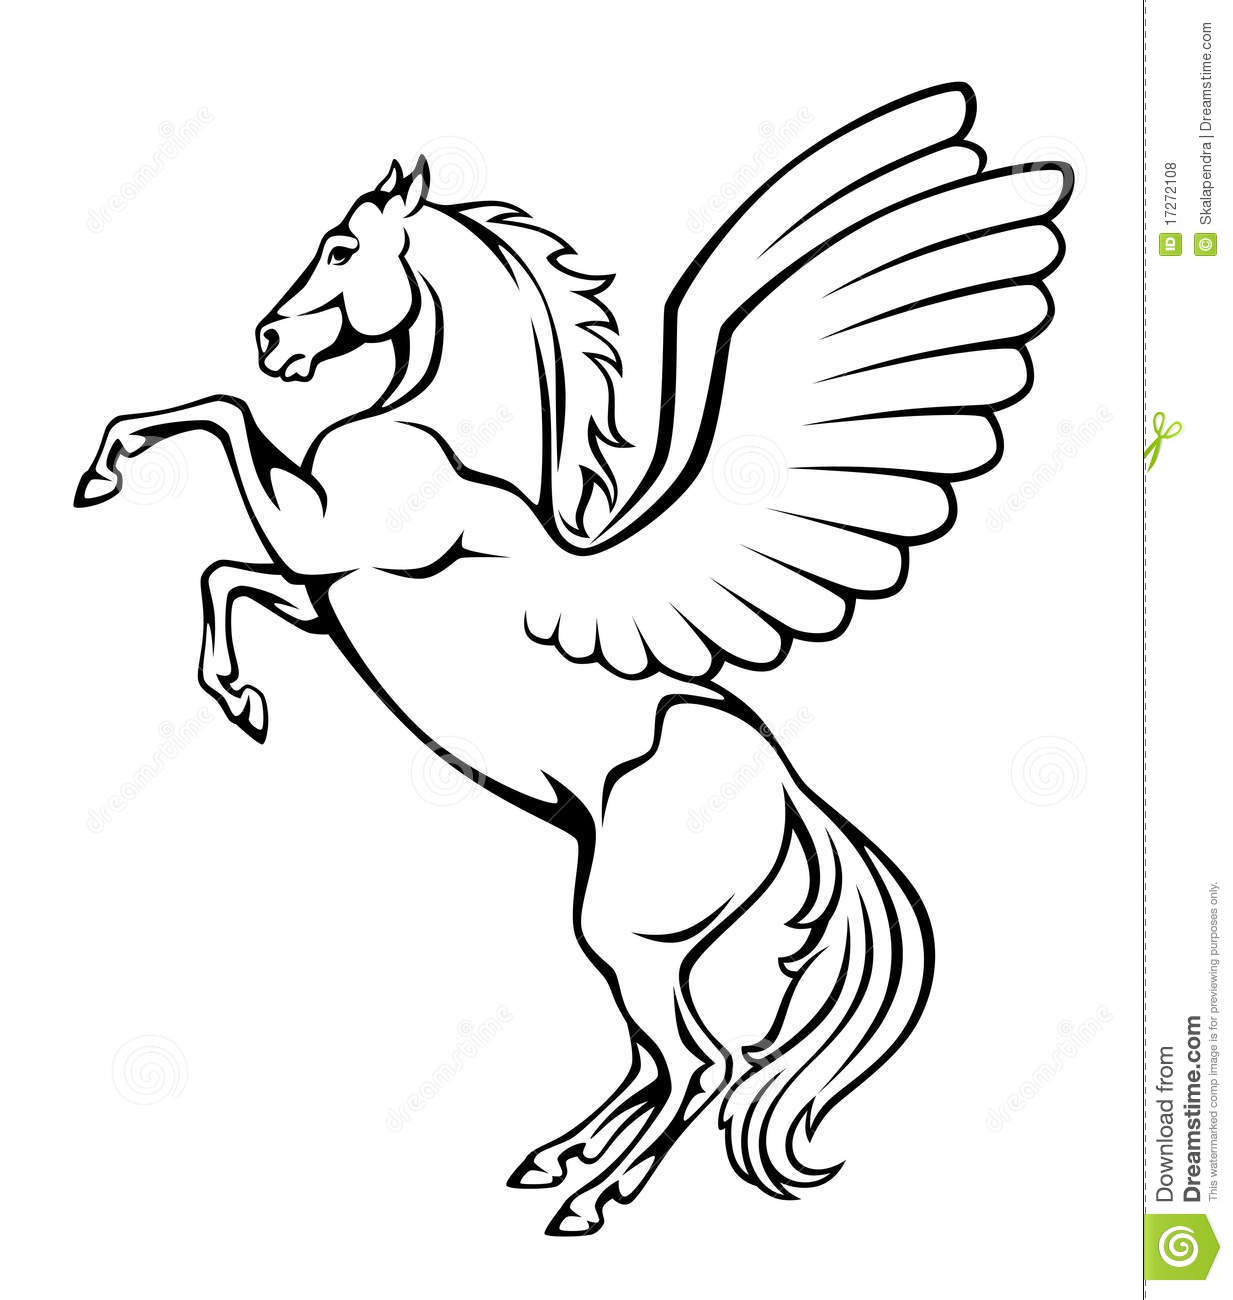 Pegasus Royalty Free Stock Photos - Image: 17272108